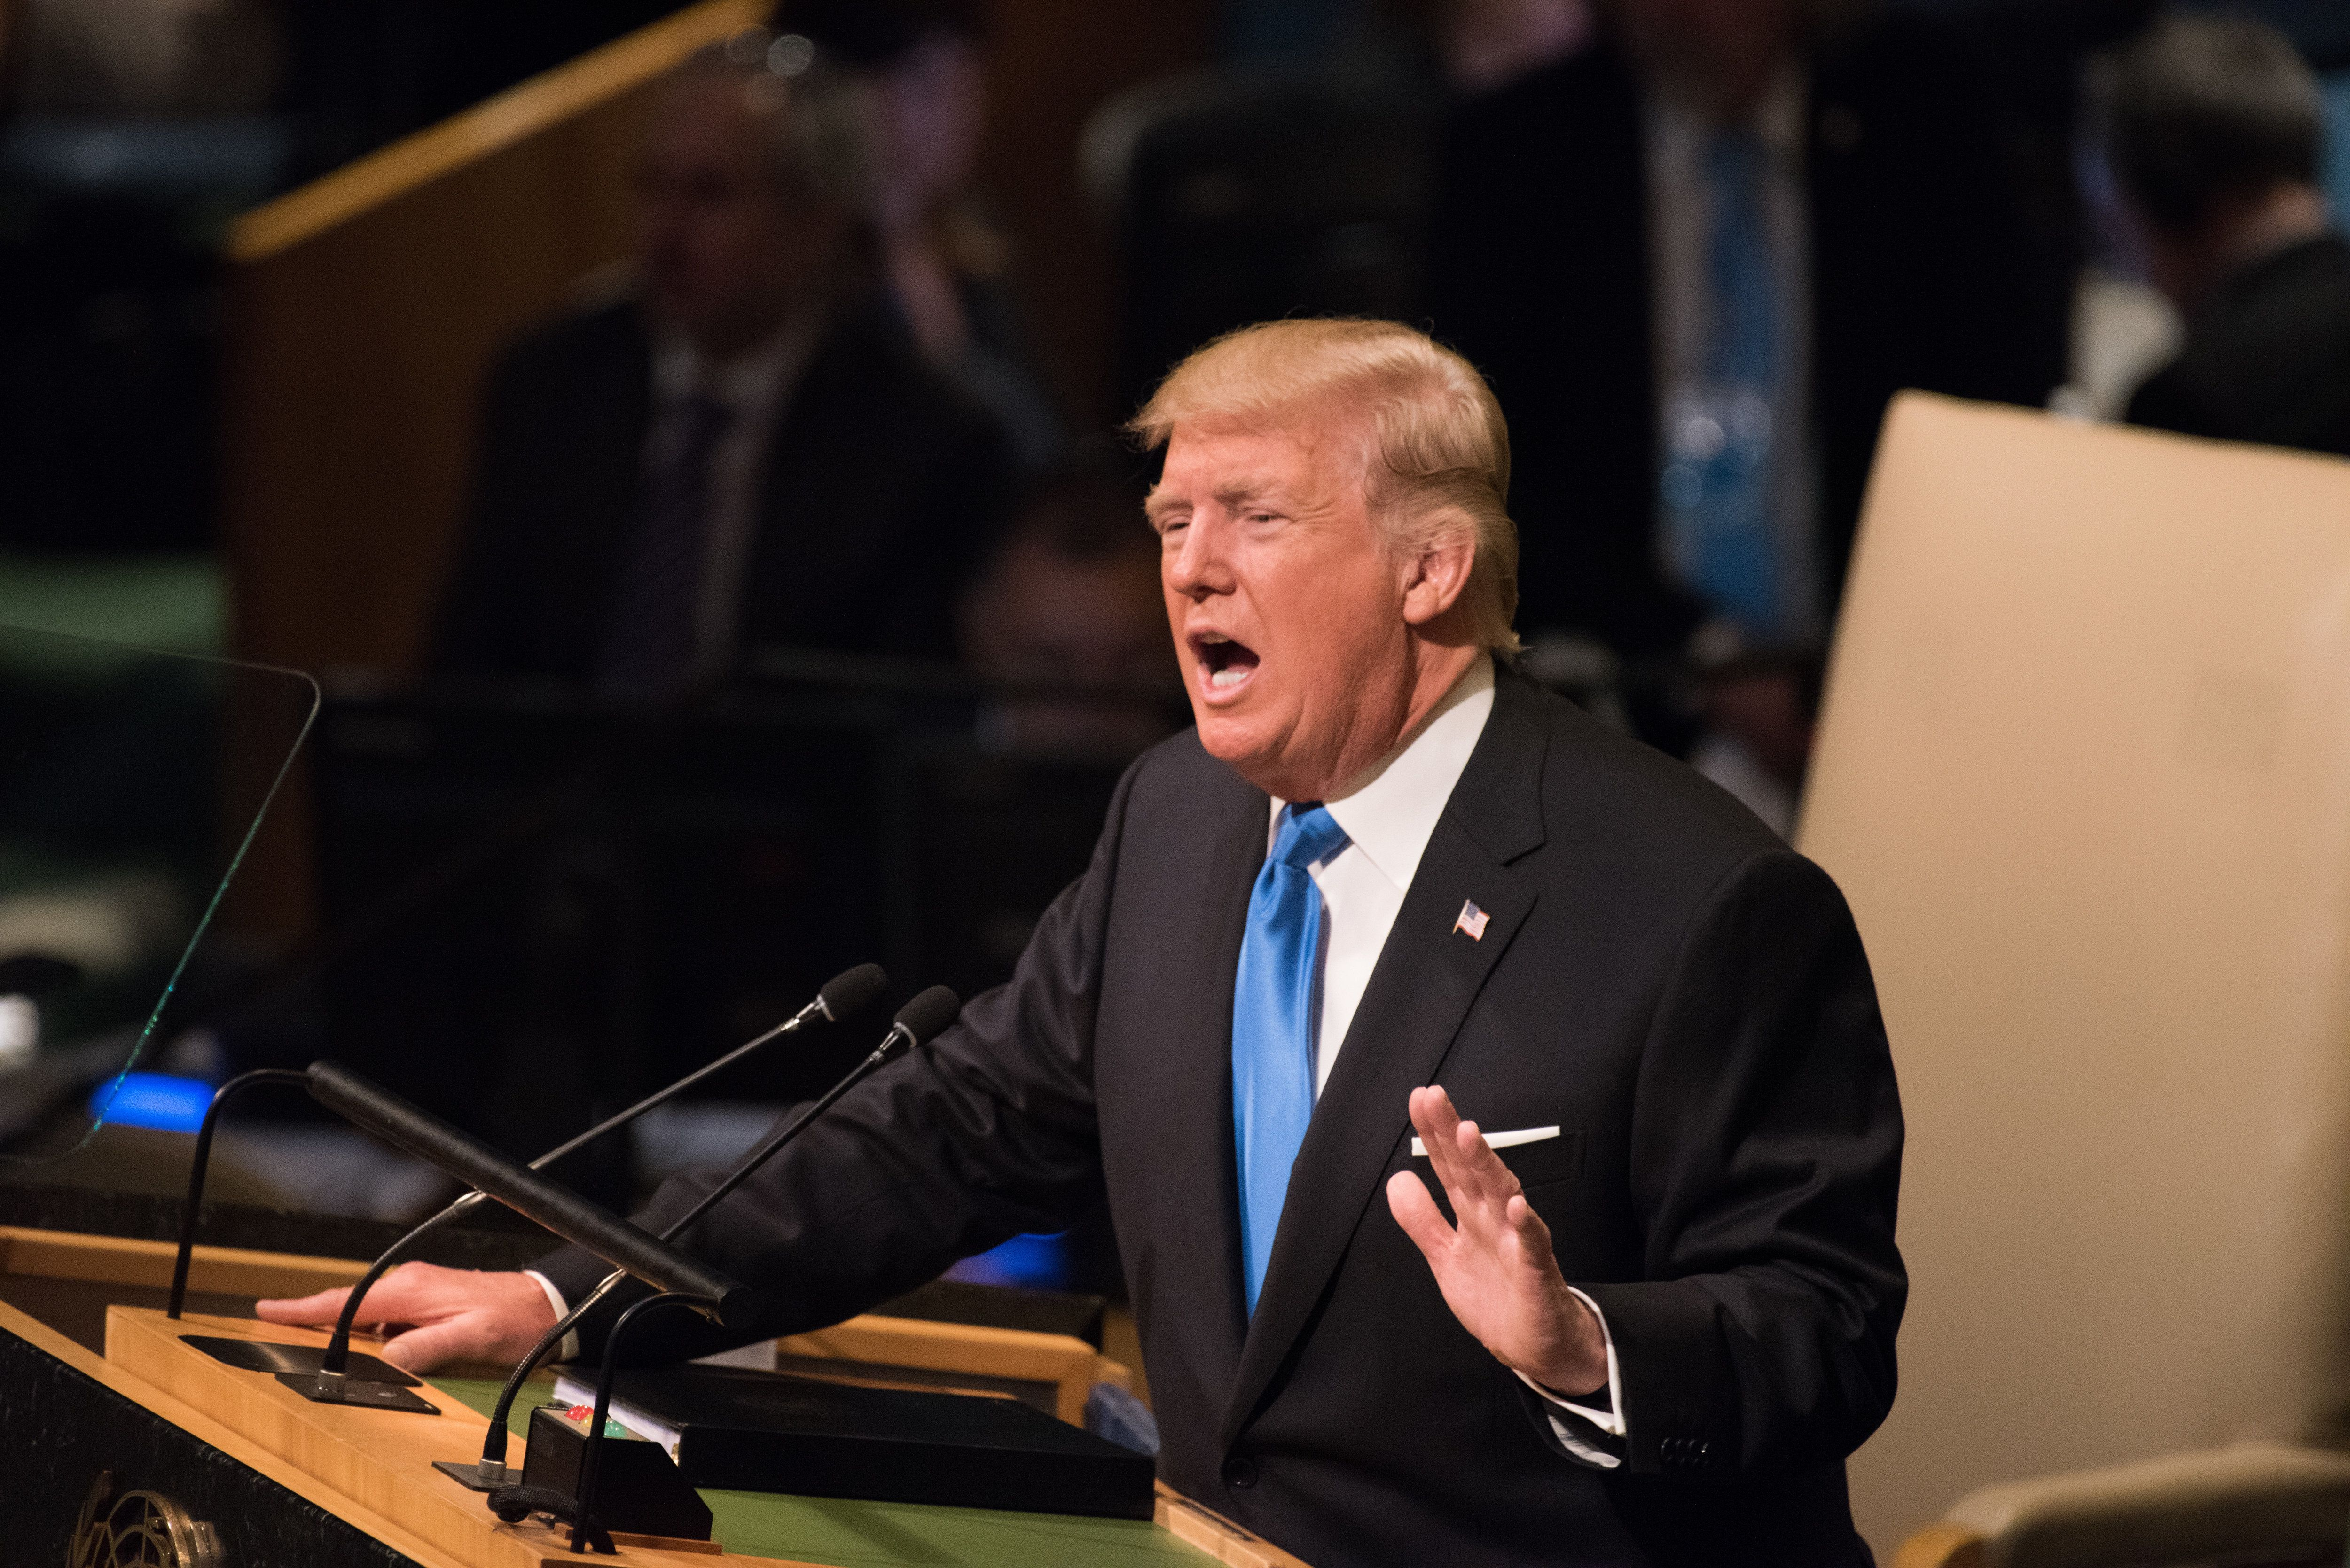 MANHATTA, NEW YORK CITY, NEW YORK, UNITED STATES - 2017/09/19: US President Donald Trump gestures during speech delivered to UN 72nd General Assembly. (Photo by Andy Katz/Pacific Press/LightRocket via Getty Images)